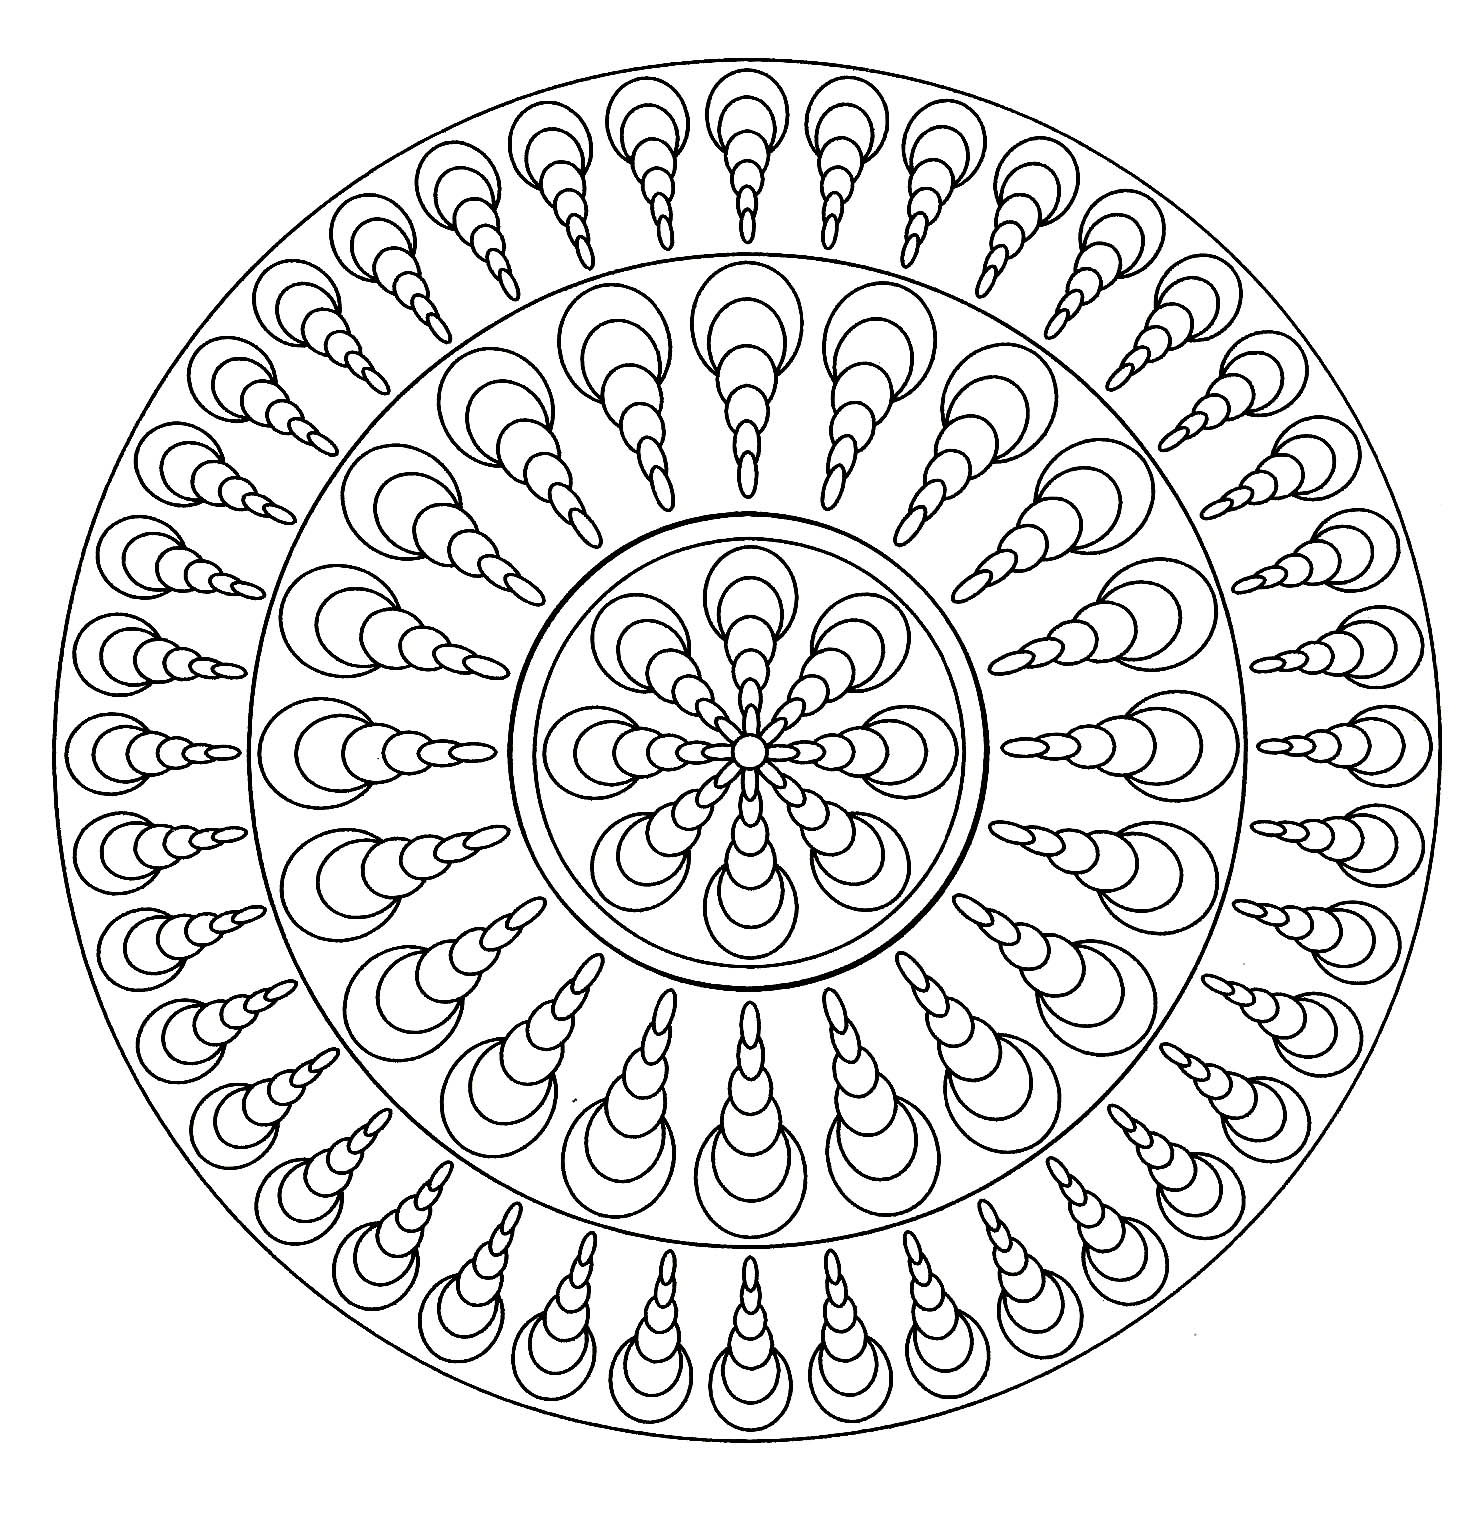 Simple Mandala 4 - Simple Mandalas - 100% Mandalas Zen & Anti-stress